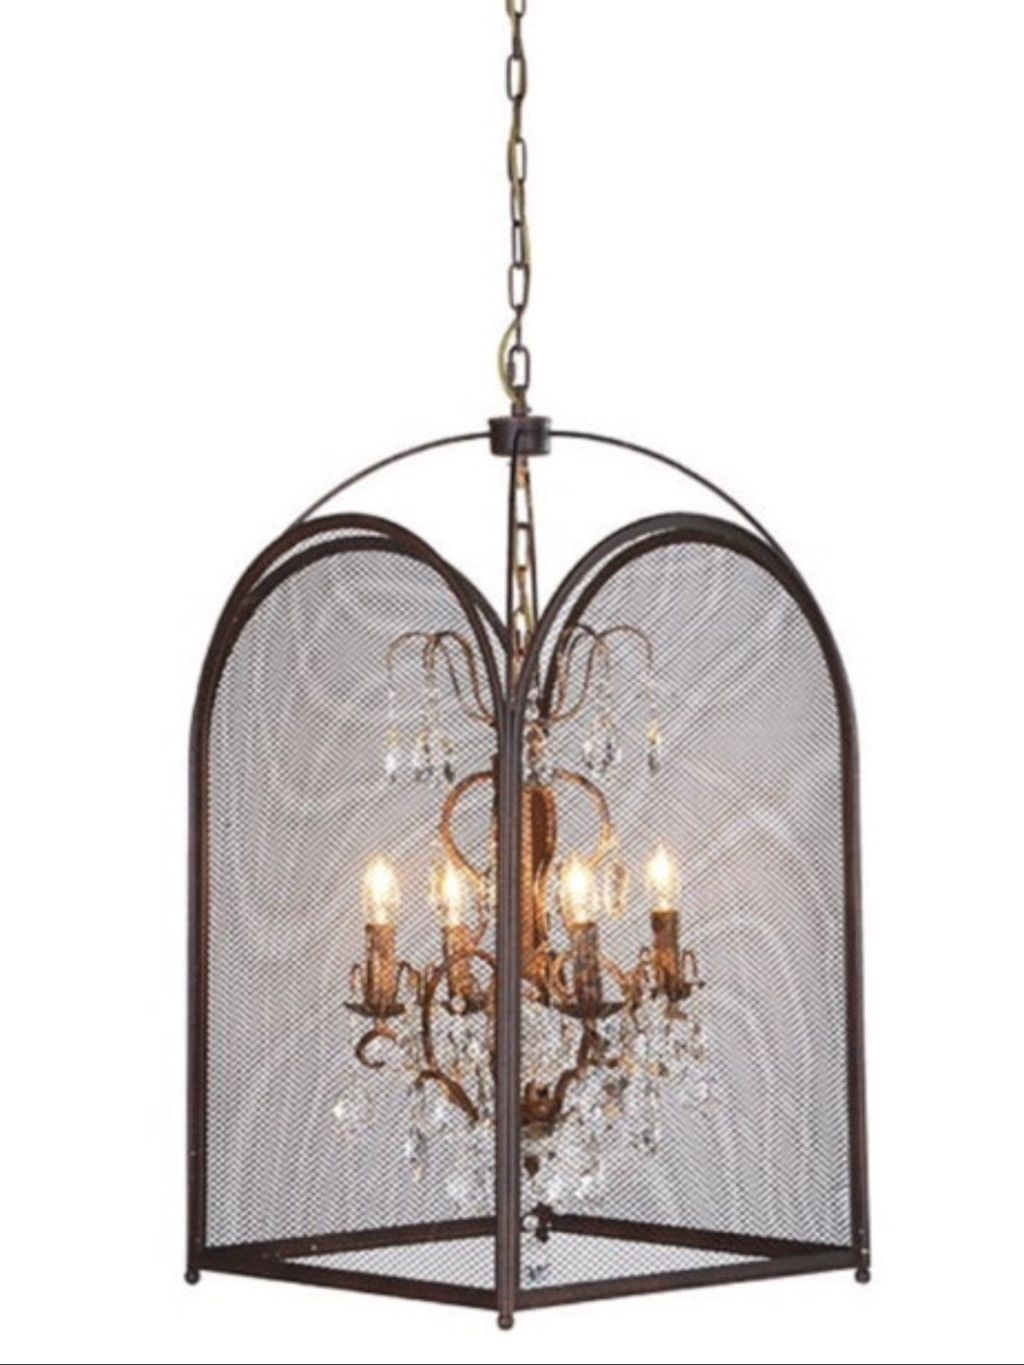 Chandelier Glamorous Caged Chandelier Trellis Cage Chandelier Pertaining To Caged Chandelier (#7 of 12)